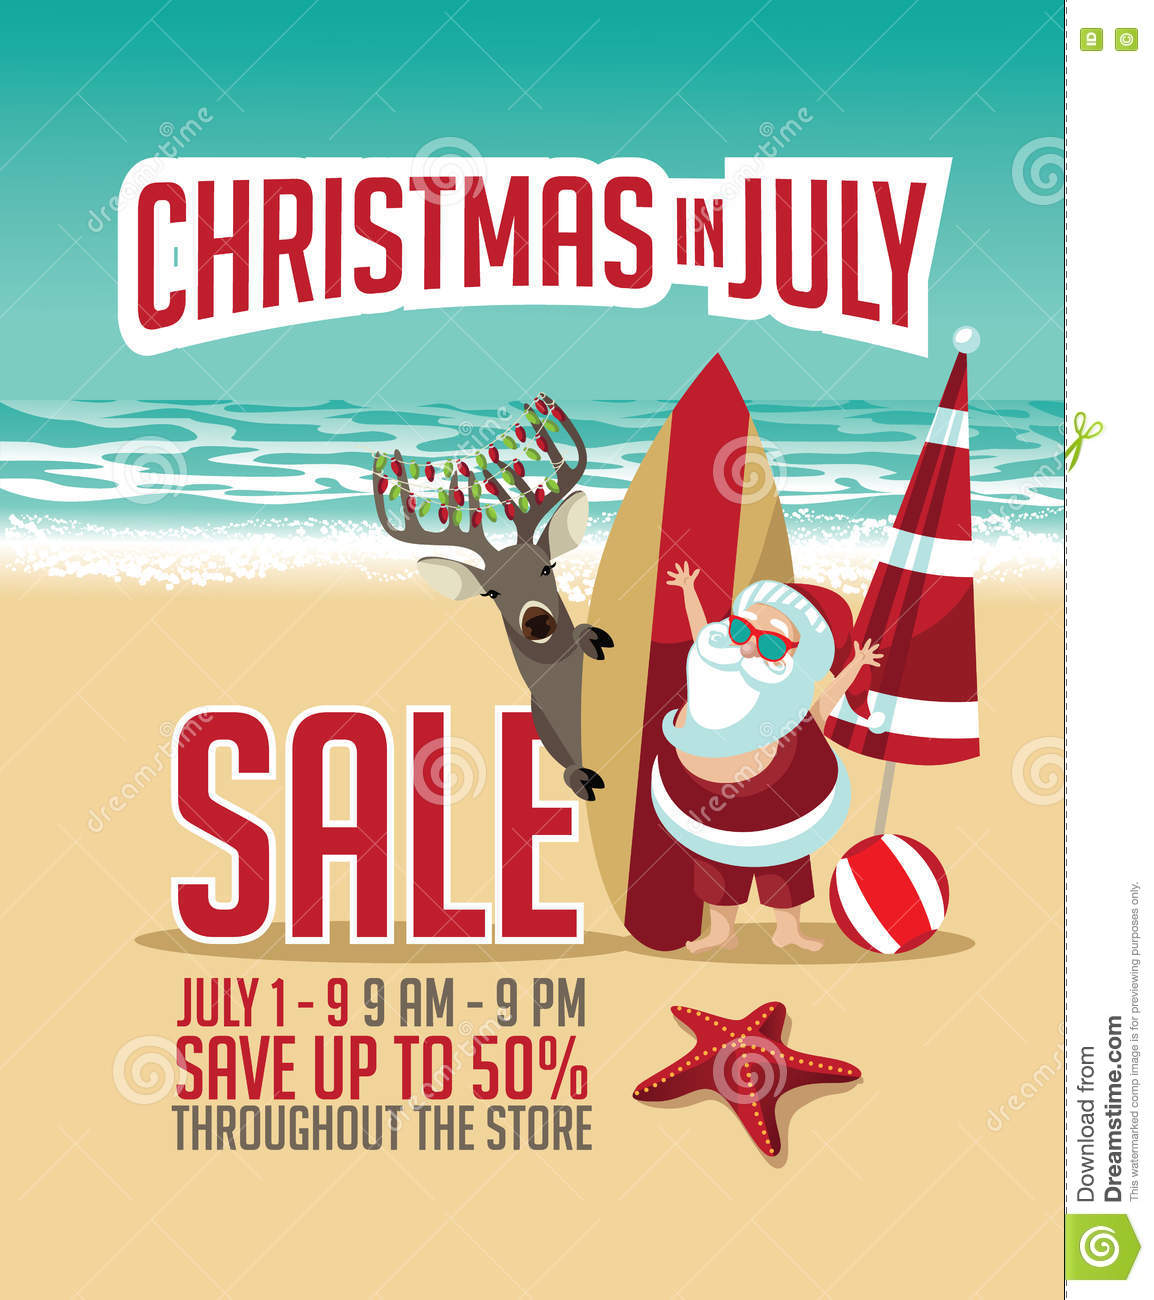 Christmas In July Sale Images.Christmas In July Sale Marketing Template Stock Vector